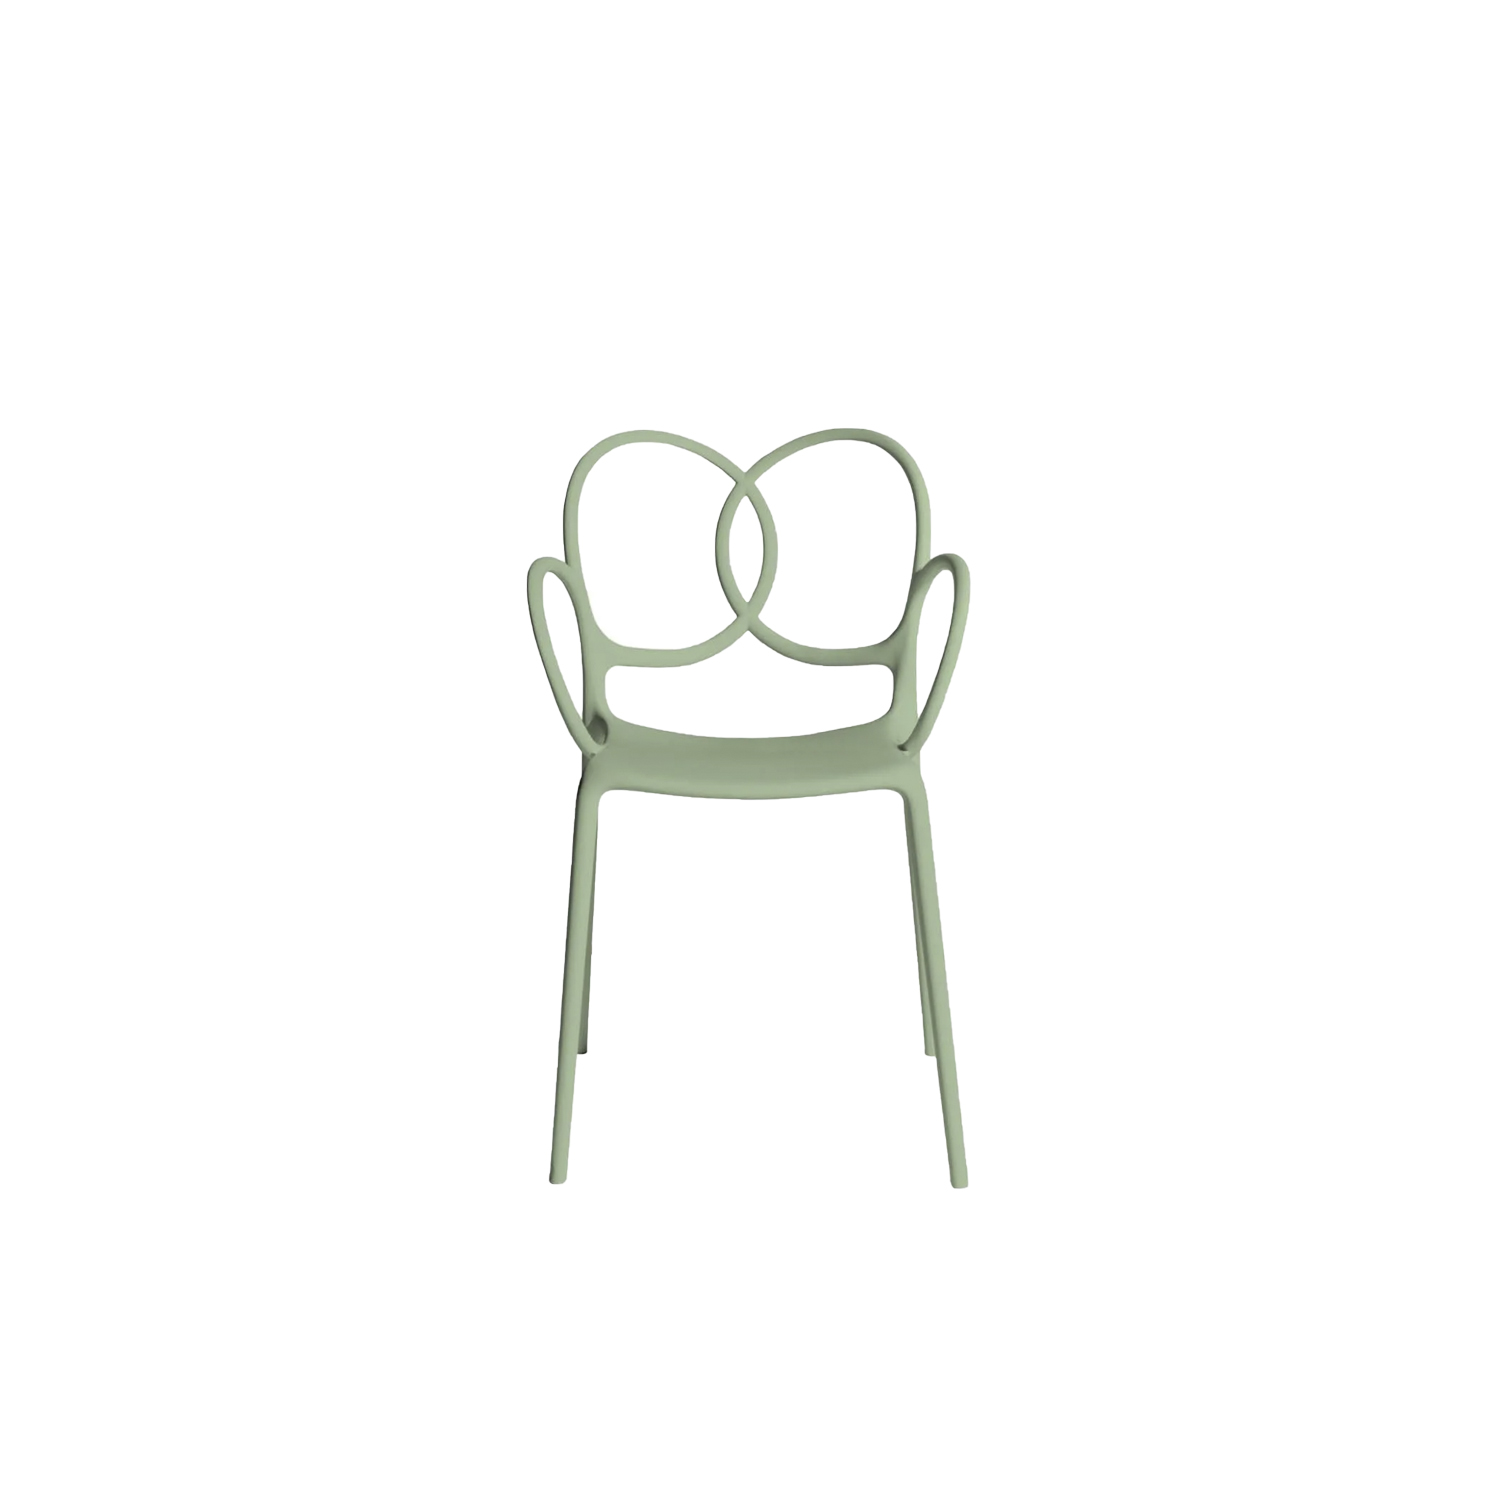 """Sissi Armchair - Sissi is a sculptural, very versatile, self- centred and contemporary piece. """"Its modern design winks cheekily at the past and at the female world. The merging and intersecting rings look as if they have been bent by the hand of the viennese craftsmen, whom since over a century ago, would offer the world an elegant and design archetype. The connections, linked in such a sensual way, turn sissi into a refined and sculptural piece, just like the ultimate viennese chair - famous for its wooden curves- it is inspired by. Just like a confident, self-assured women changes her clothes to suit her mood, this chair is complemented by an essential part of its design, the seat cover.""""Ludovica and Roberto Palomba.  The material with which this collection is made derives from industrial recycling coming from internal production waste, and therefore controlled, and from post-consumer recycling, that is from products disposed of with separate collection - such as PET bottles and containers, for instance - and recycled, thus giving life to new objects.  All the seats made with this material are characterized by neutral colors - such as black in particular - which makes them homogeneous. 